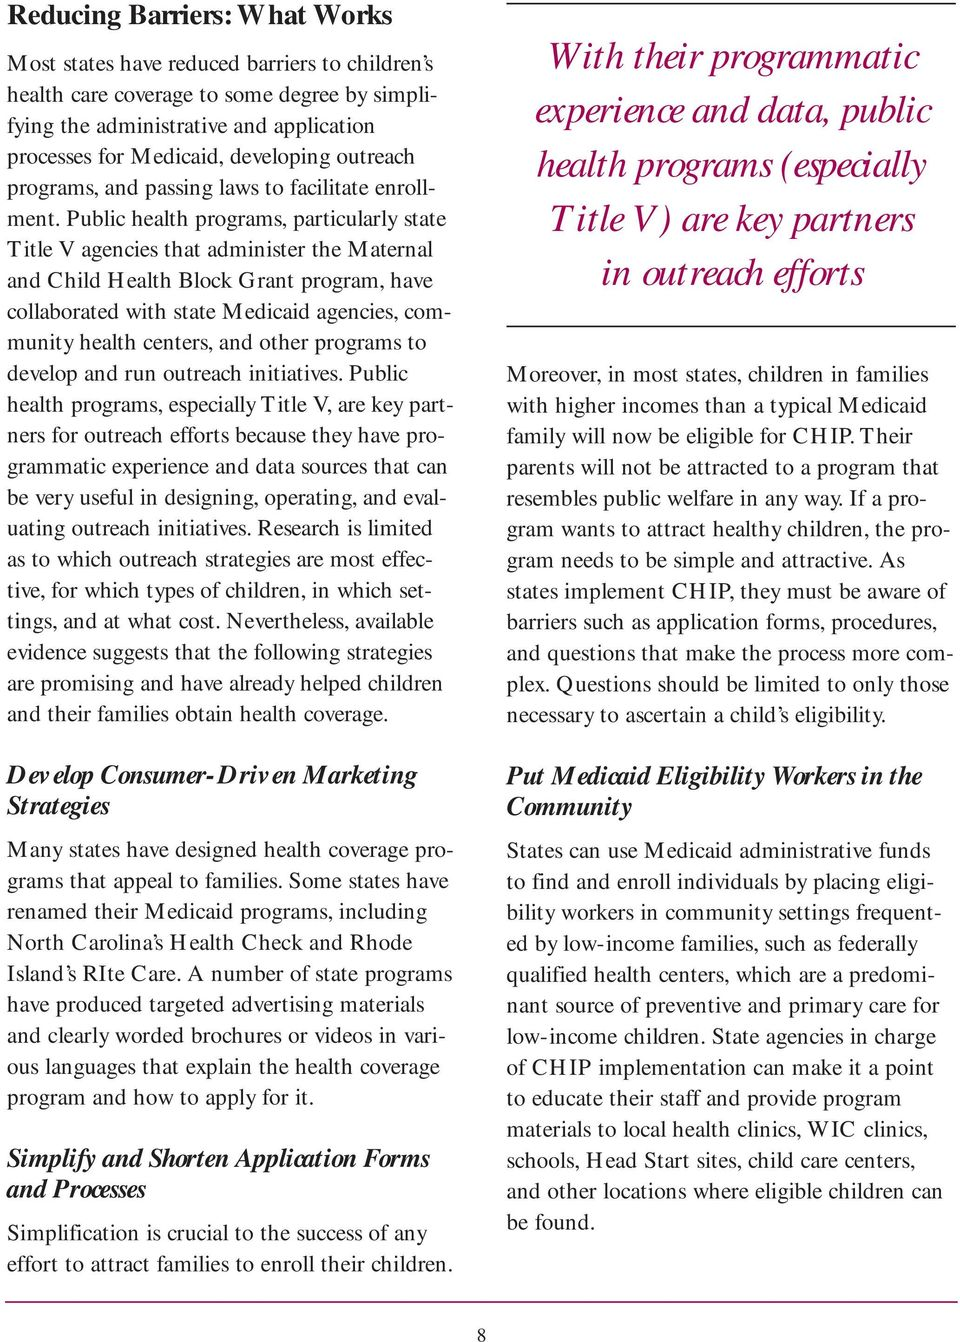 Public health programs, particularly state Title V agencies that administer the Maternal and Child Health Block Grant program, have collaborated with state Medicaid agencies, community health